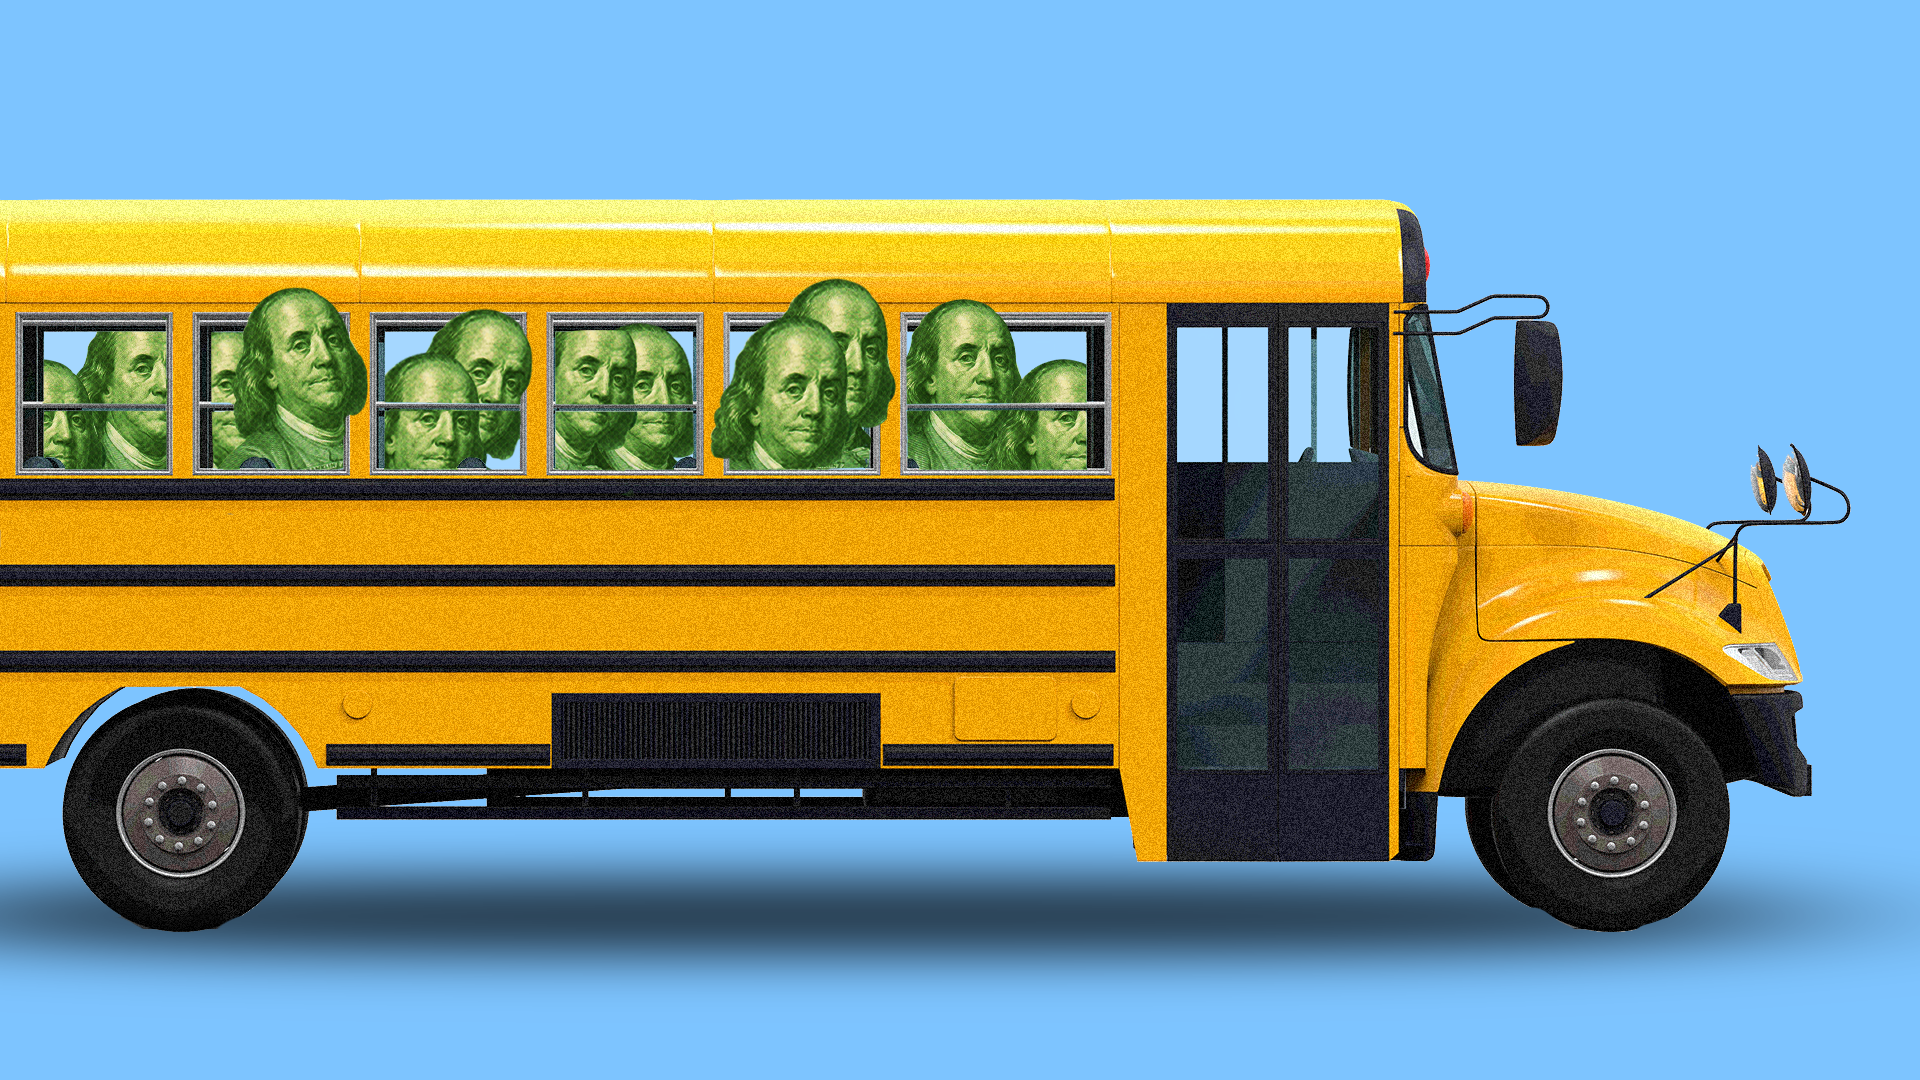 Schoolbus with hundred dollar bills